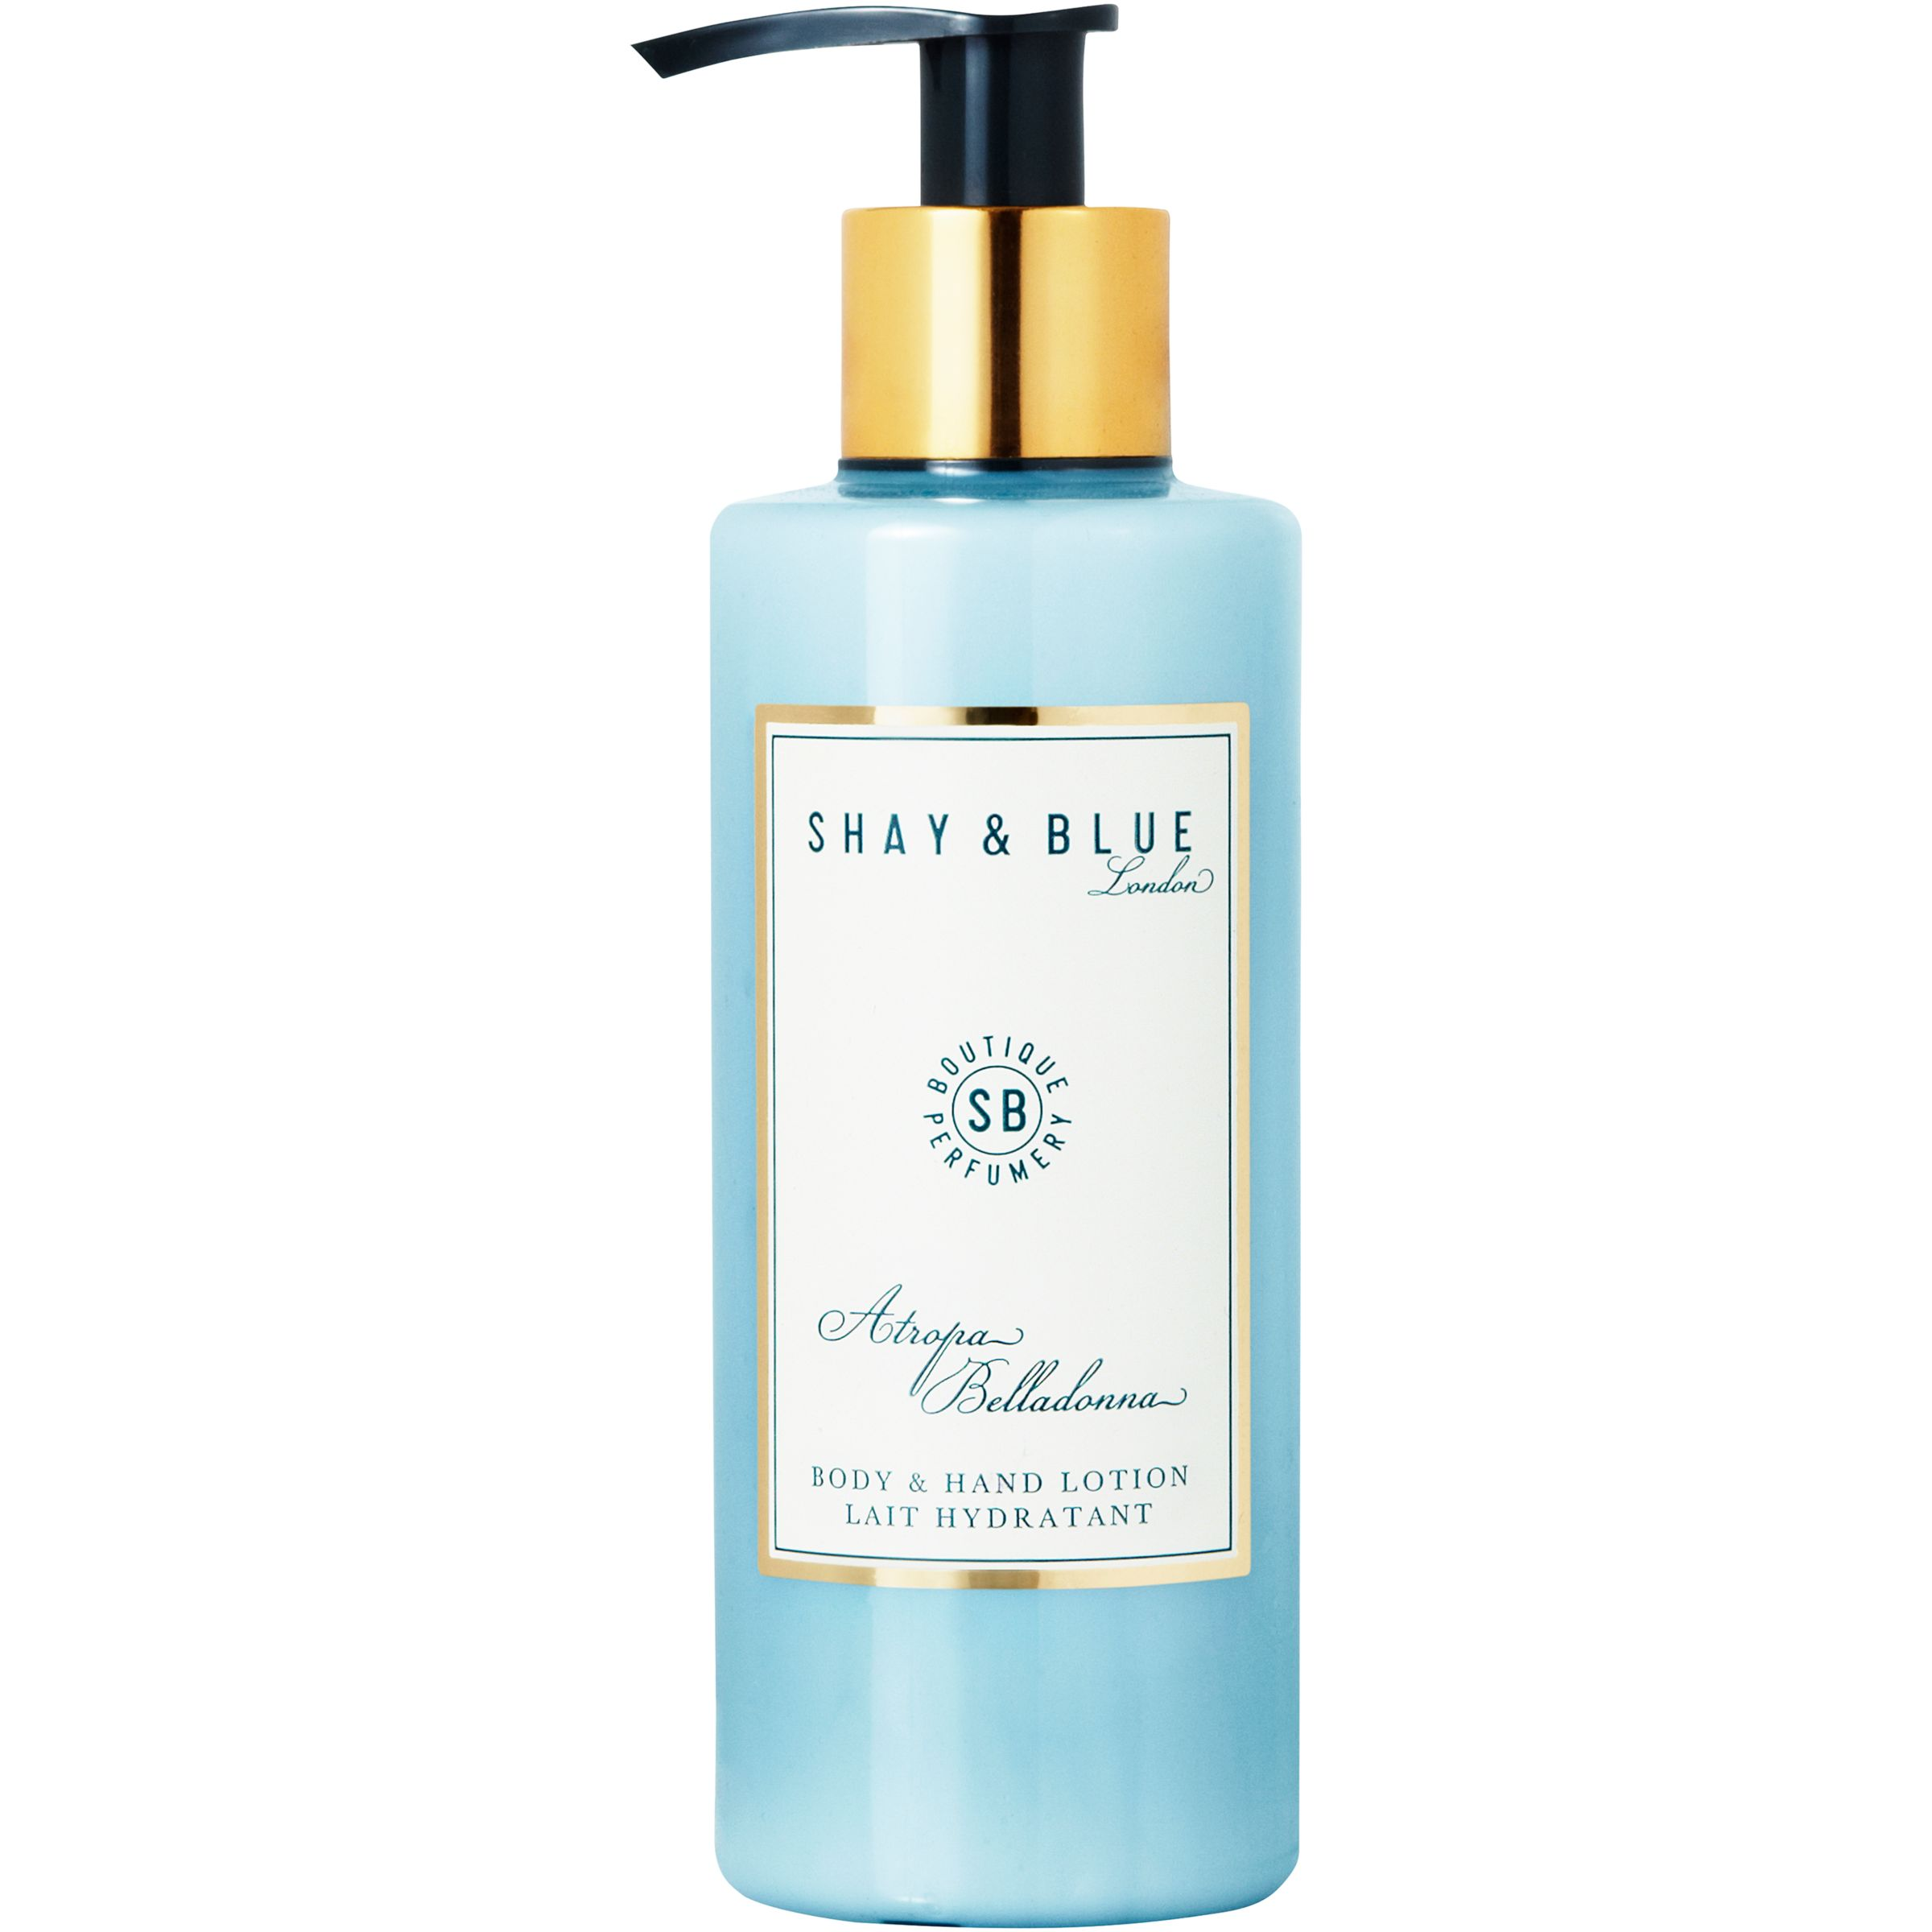 Shay & Blue Shay & Blue Atropa Belladonna Body & Hand Lotion, 200ml